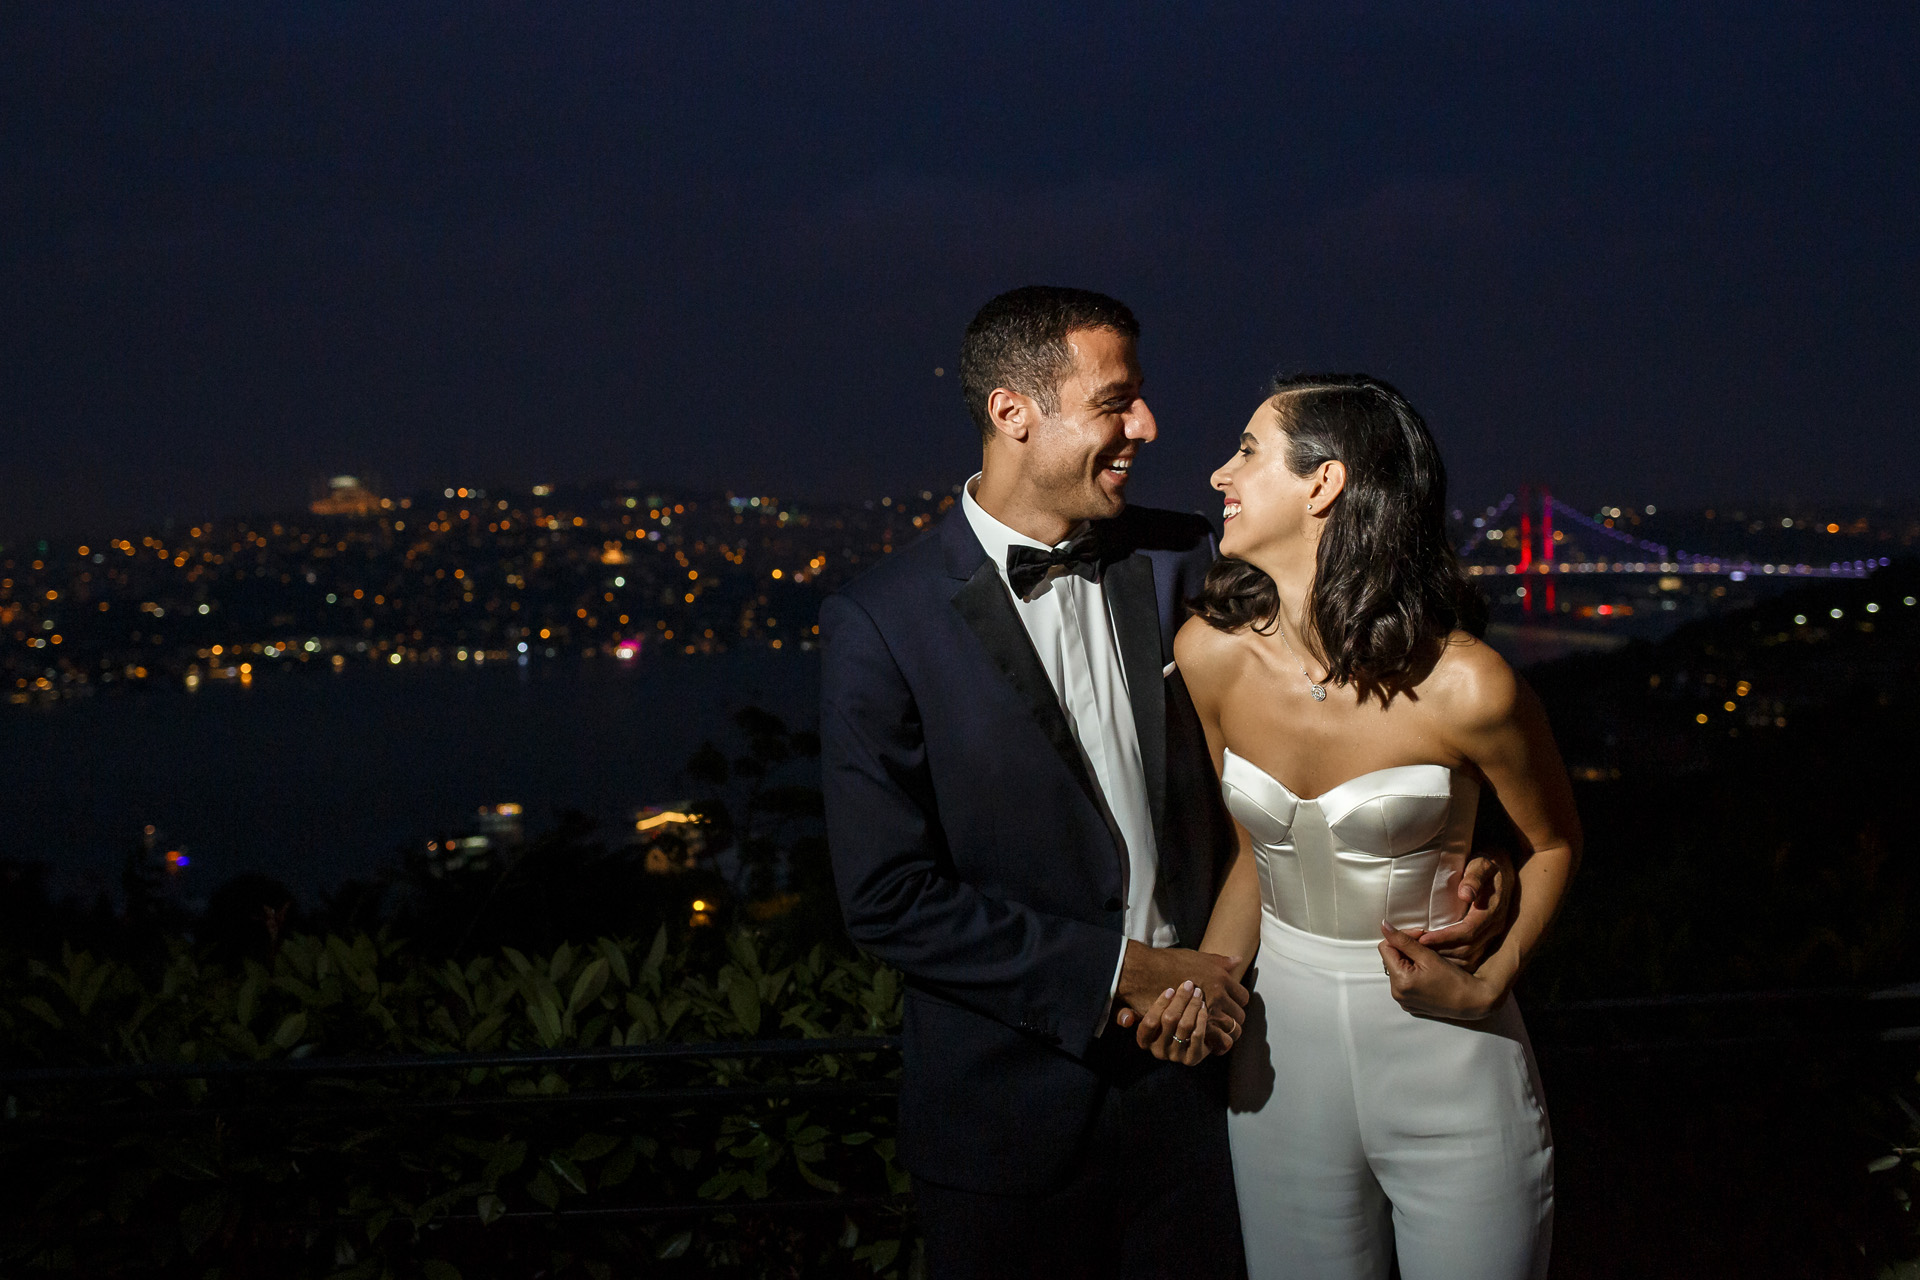 Ulus 29, Ulus, Istanbul, Turkey Wedding Couple Portrait | The couple holding each other during this photoshoot with the city lights